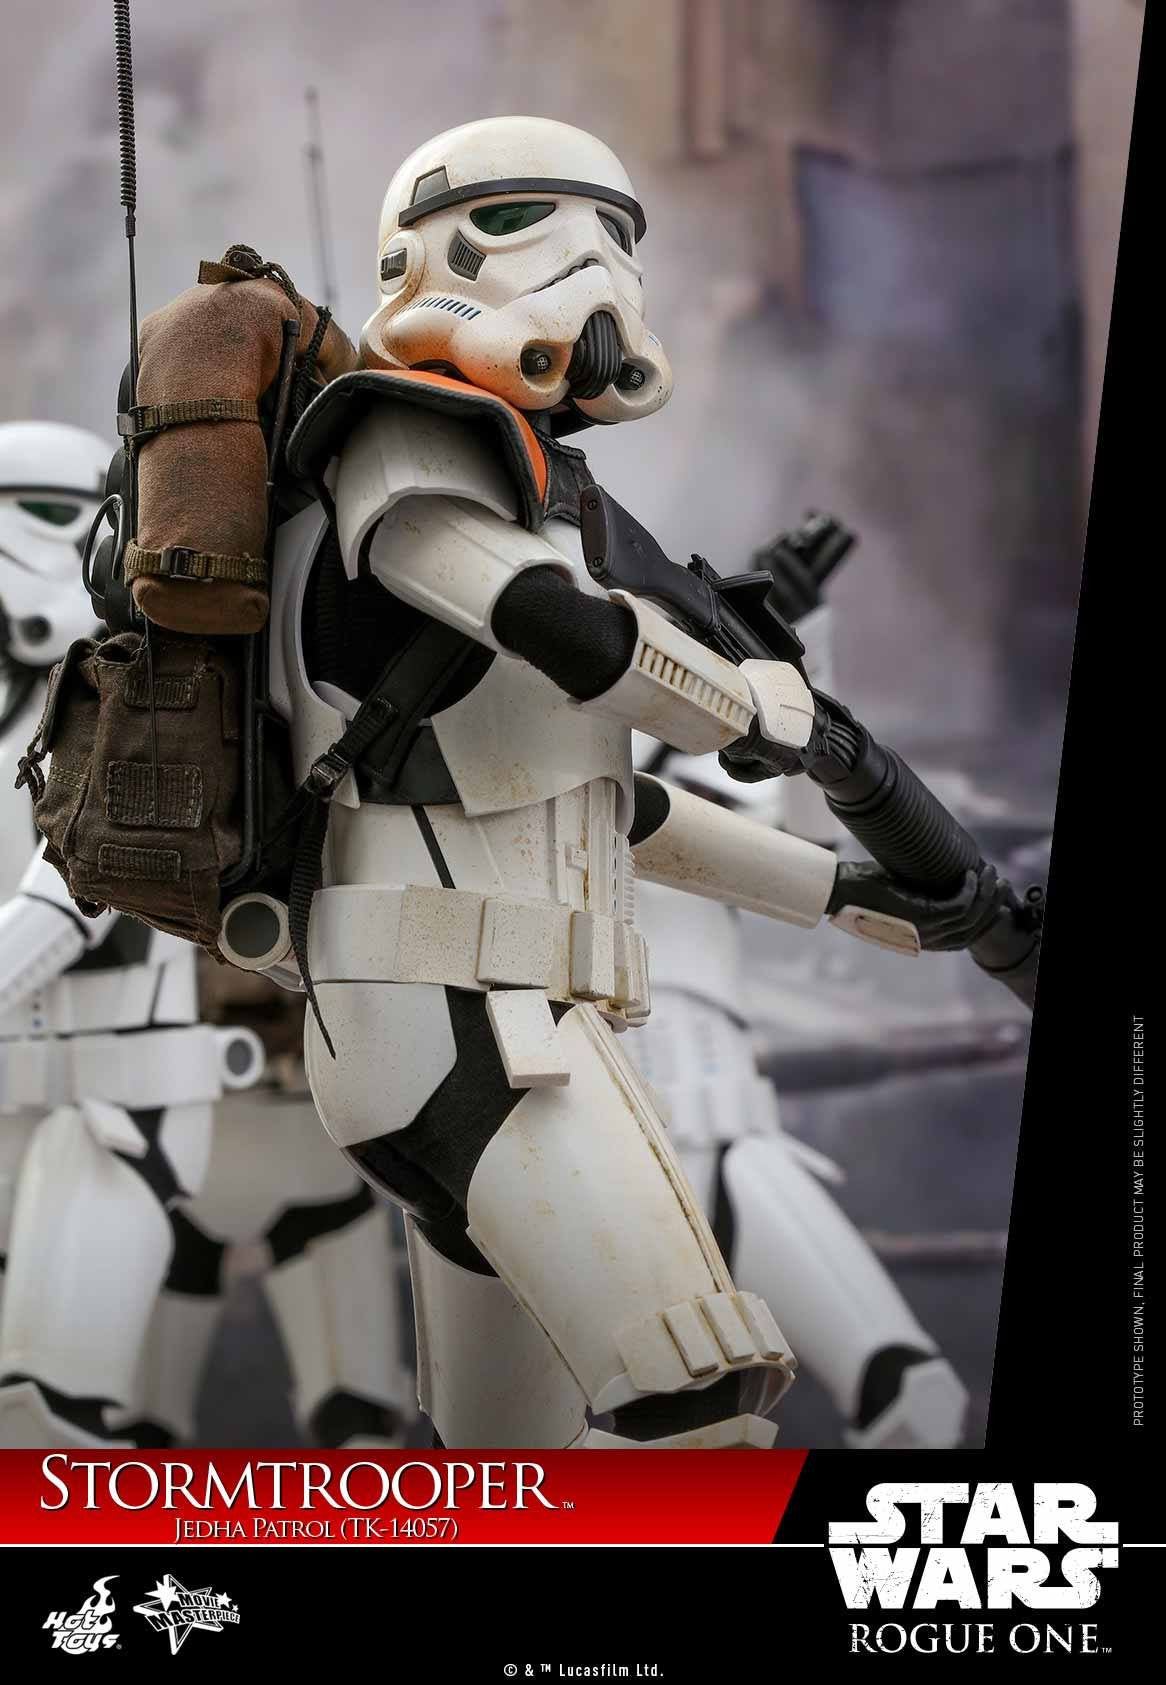 Hot Toys - MMS392 - Rogue One: A Star Wars Story - Stormtrooper Jedha Patrol (TK-14057) - Marvelous Toys - 6